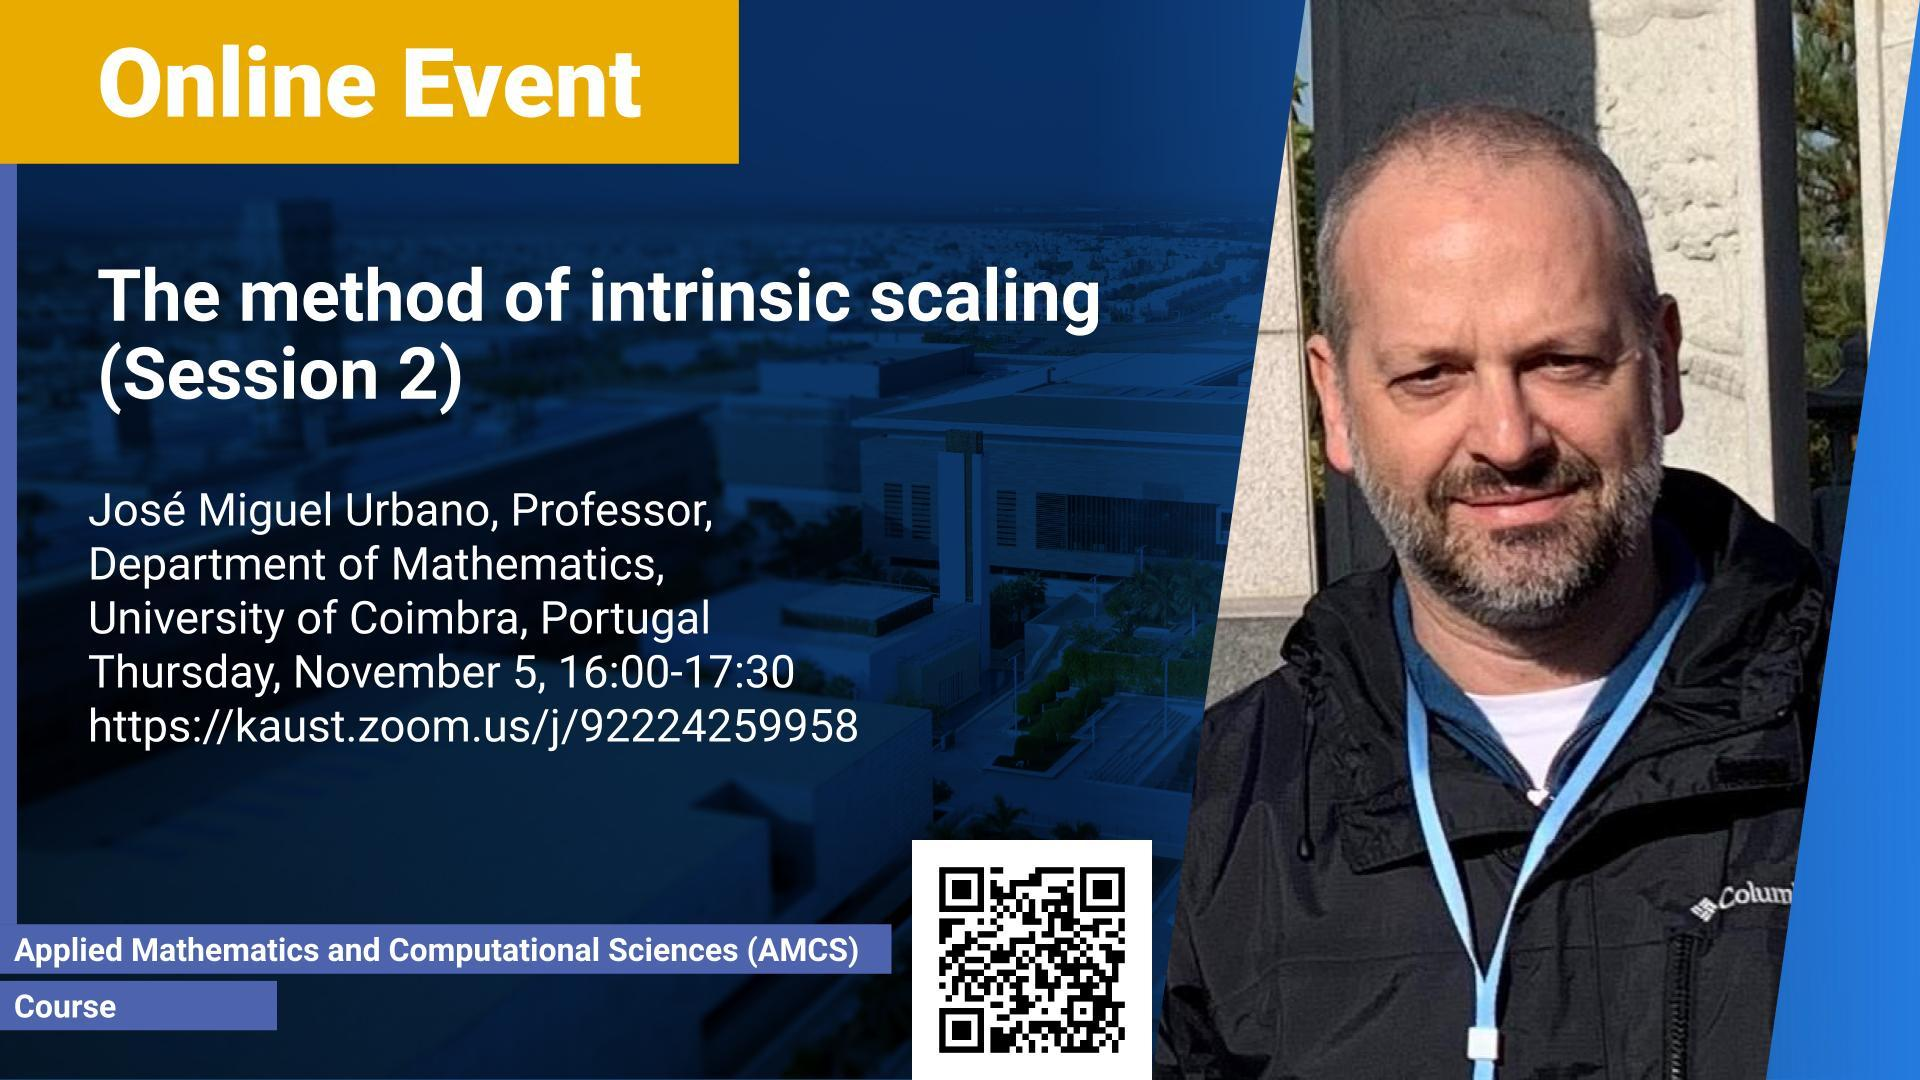 KAUST CEMSE AMCS Jose Urbano The method of intrinsic scaling Session 2